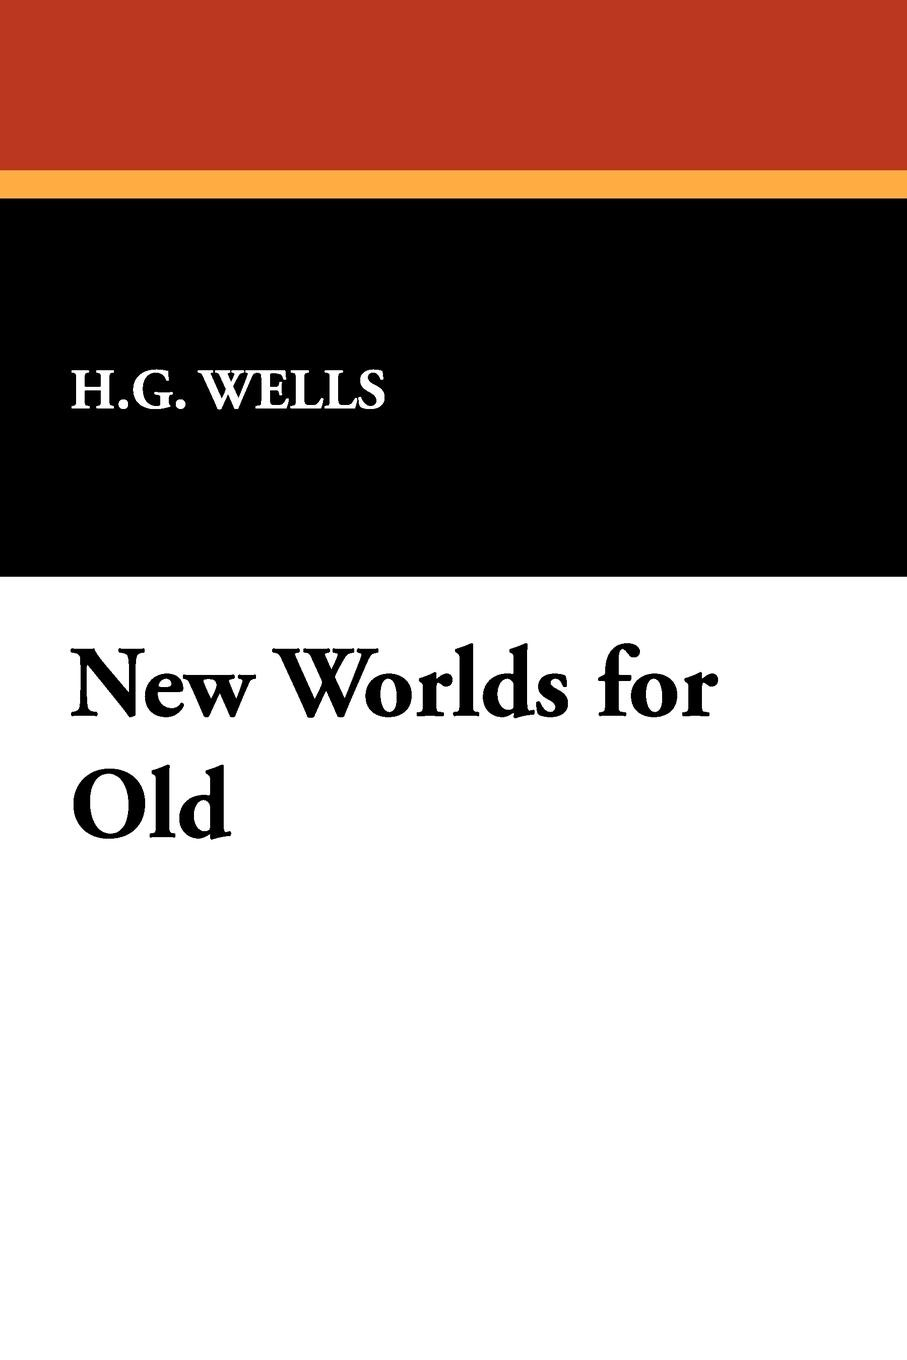 H. G. Wells New Worlds for Old